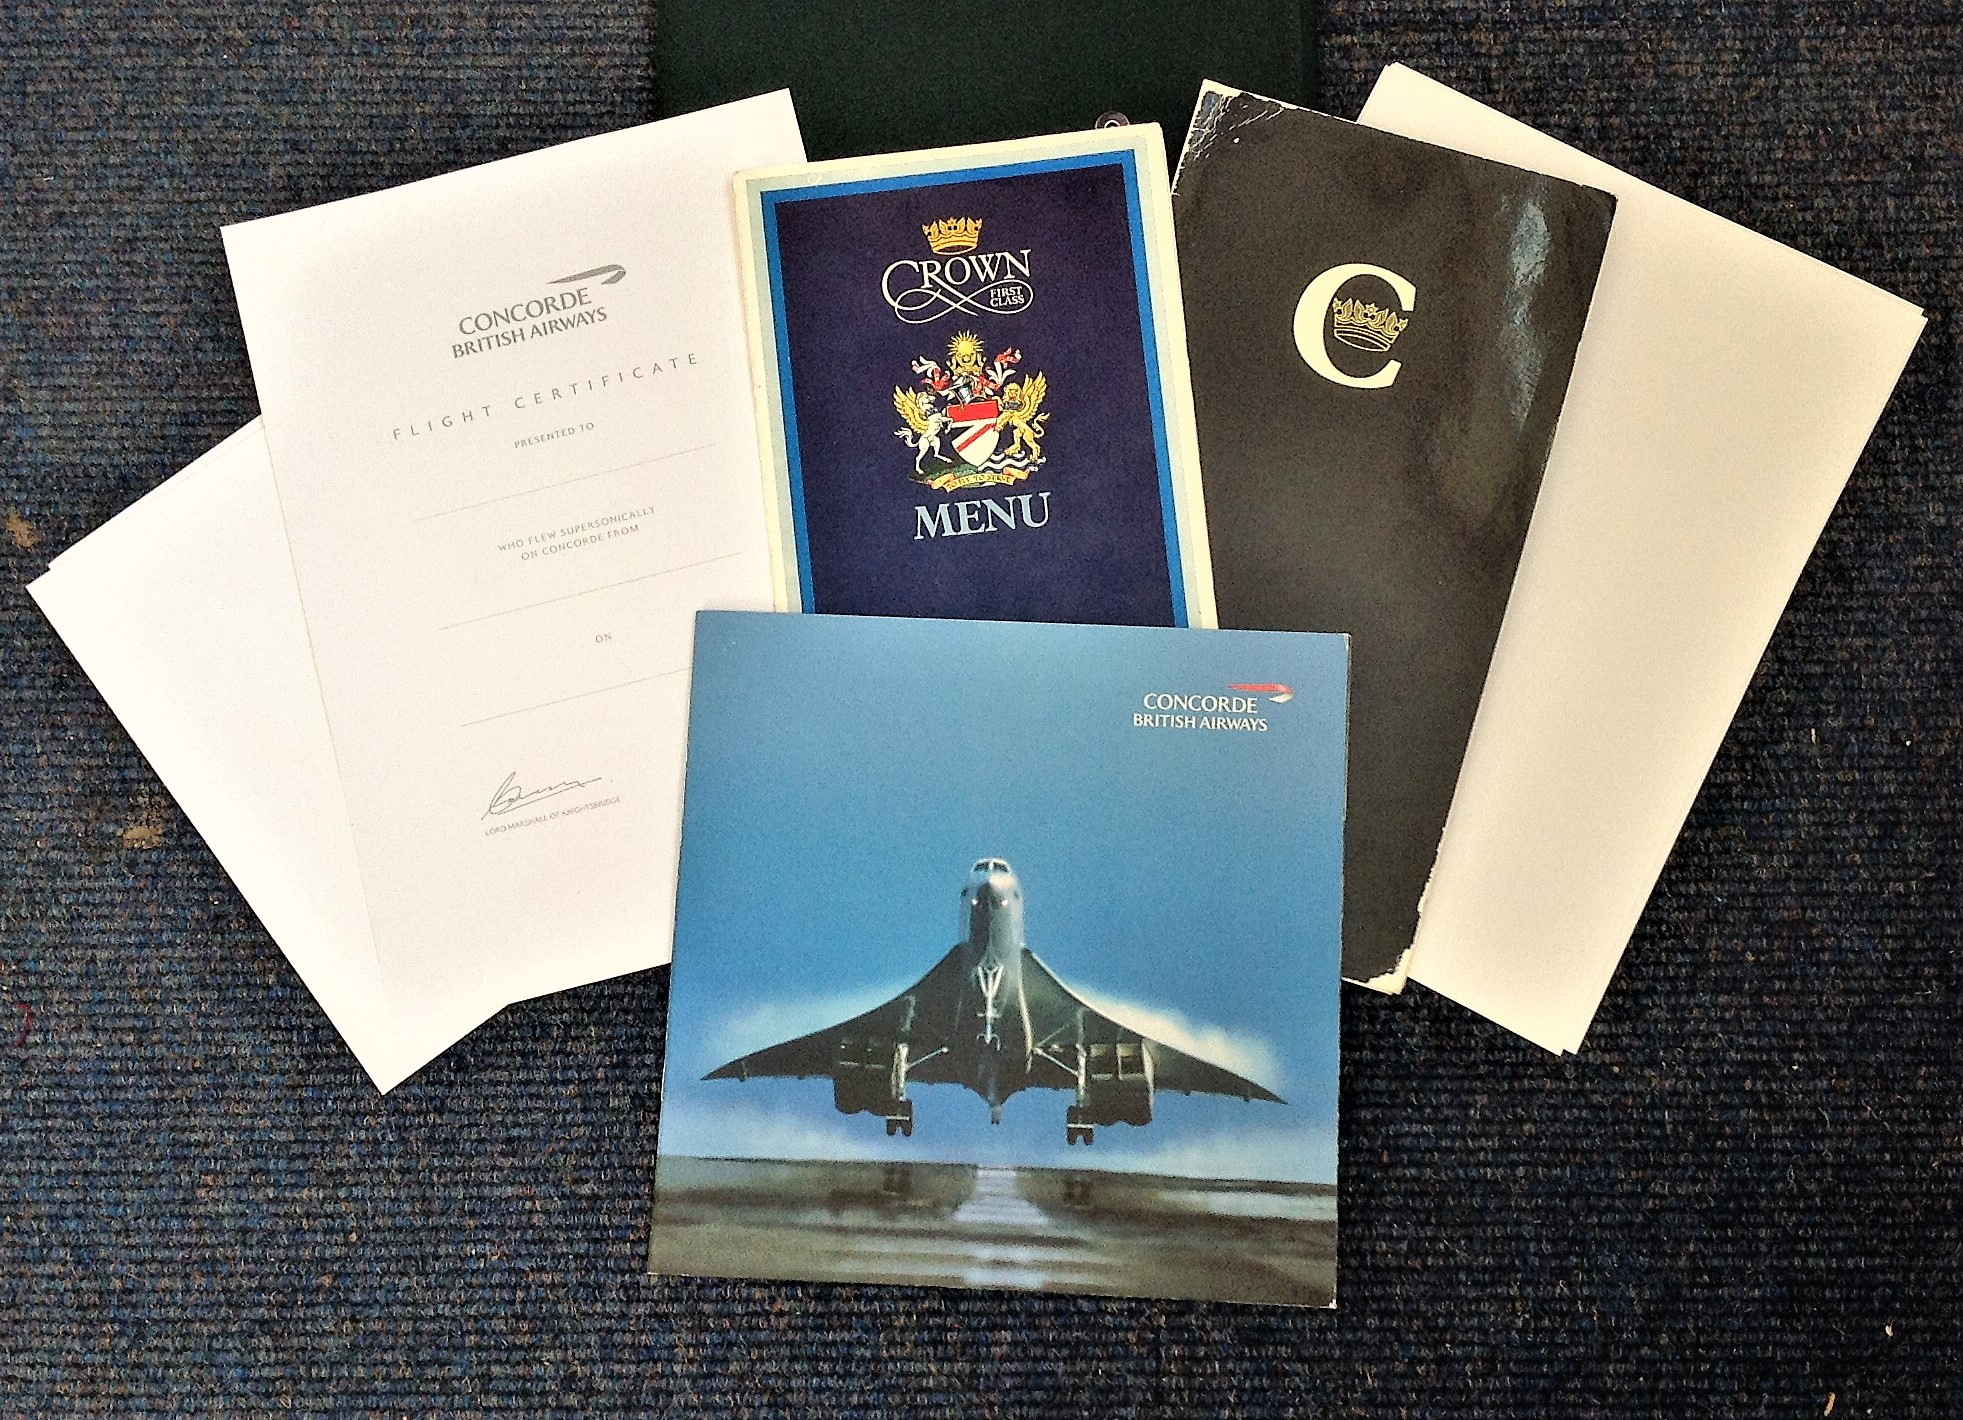 Concorde Folder containing Booklets, Menus and other commemorative items issued on Concorde flights.